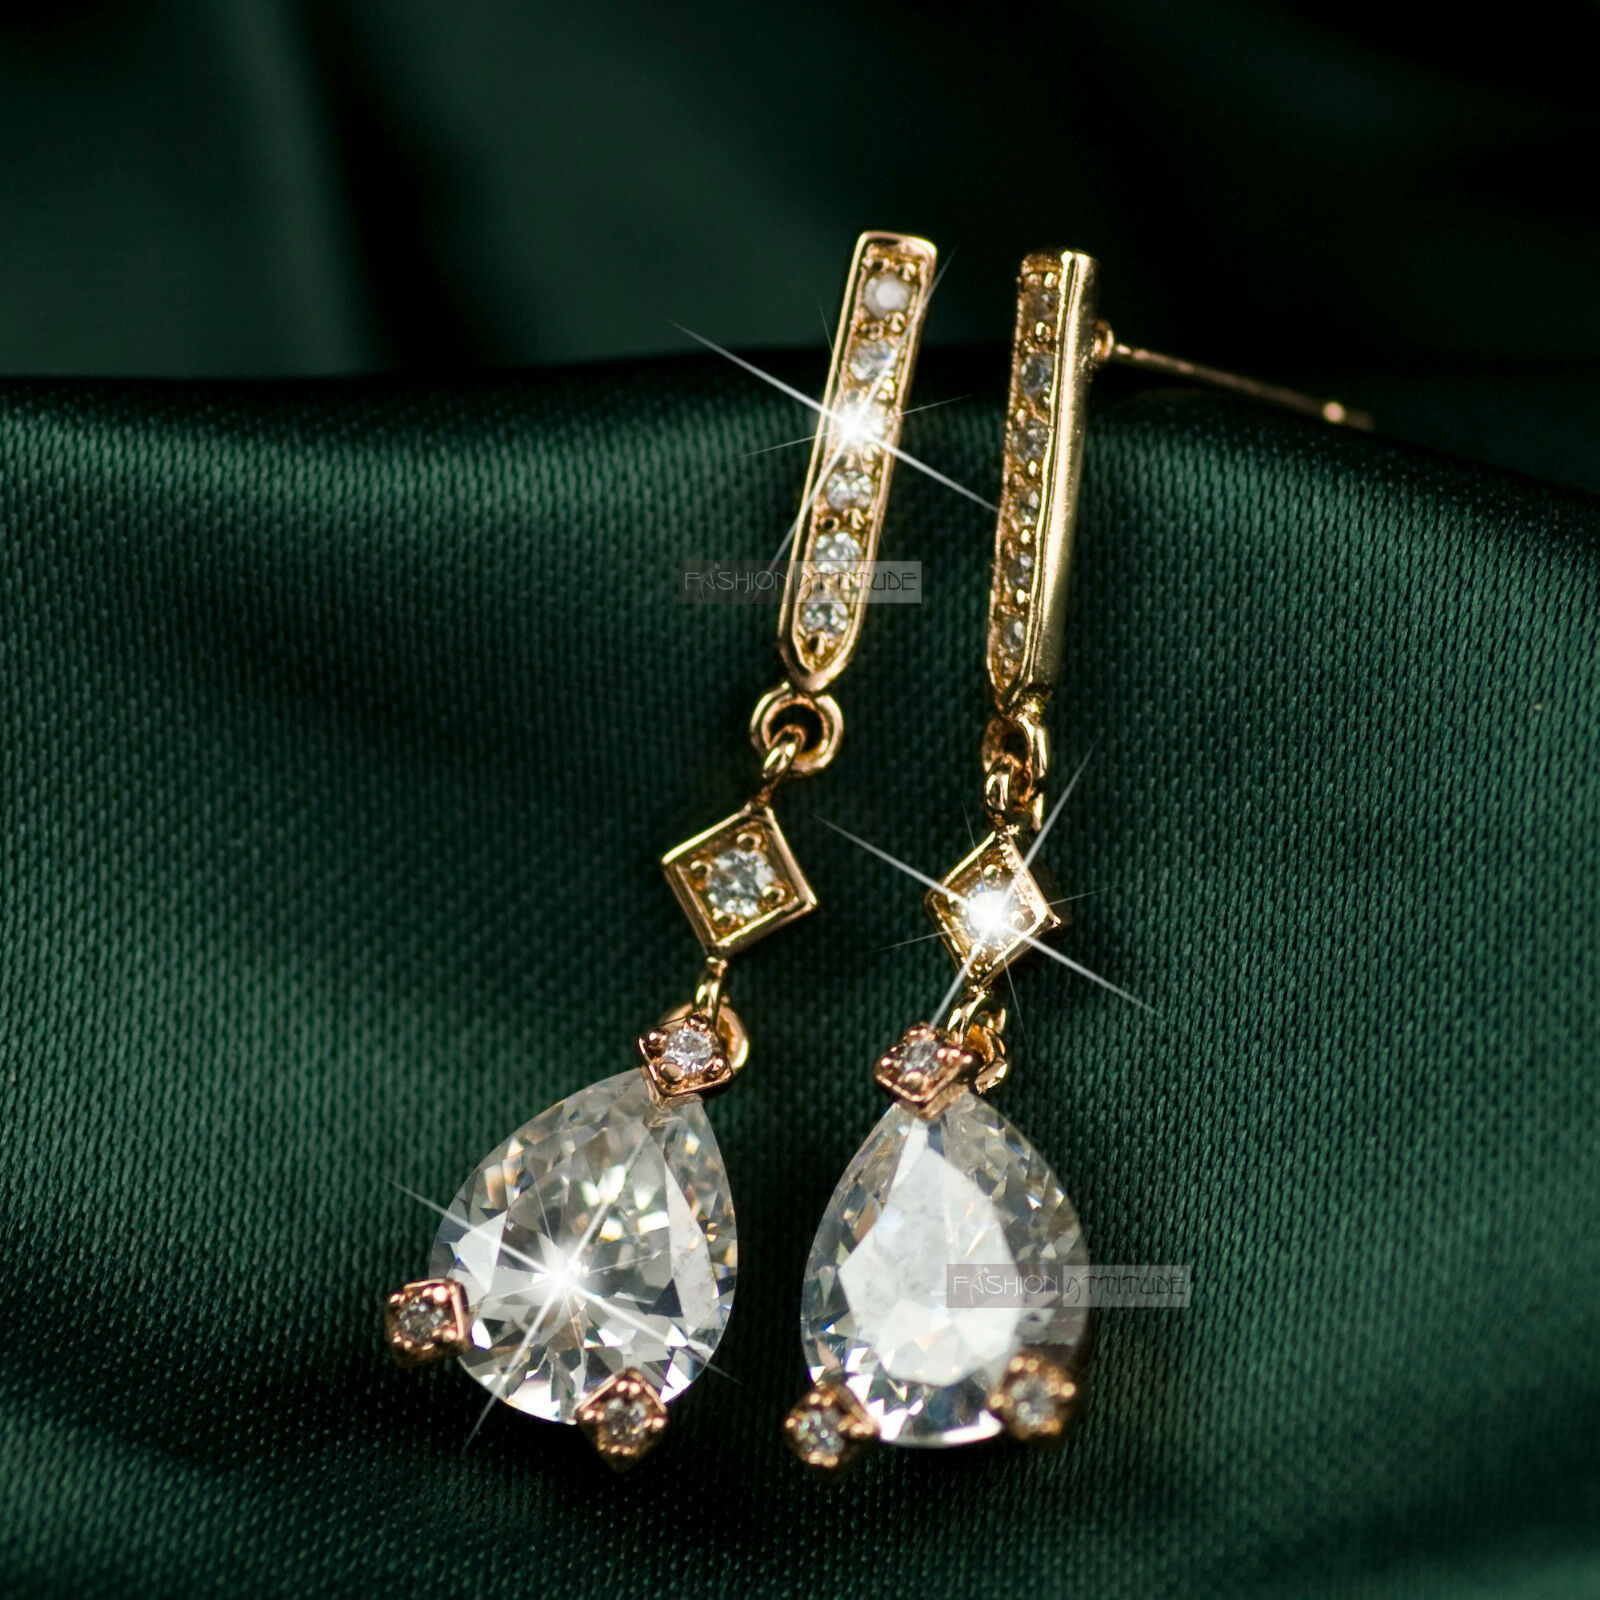 02334f48ab1fba 18k rose gold gf made with tear drop SWAROVSKI crystal stud earrings dangle